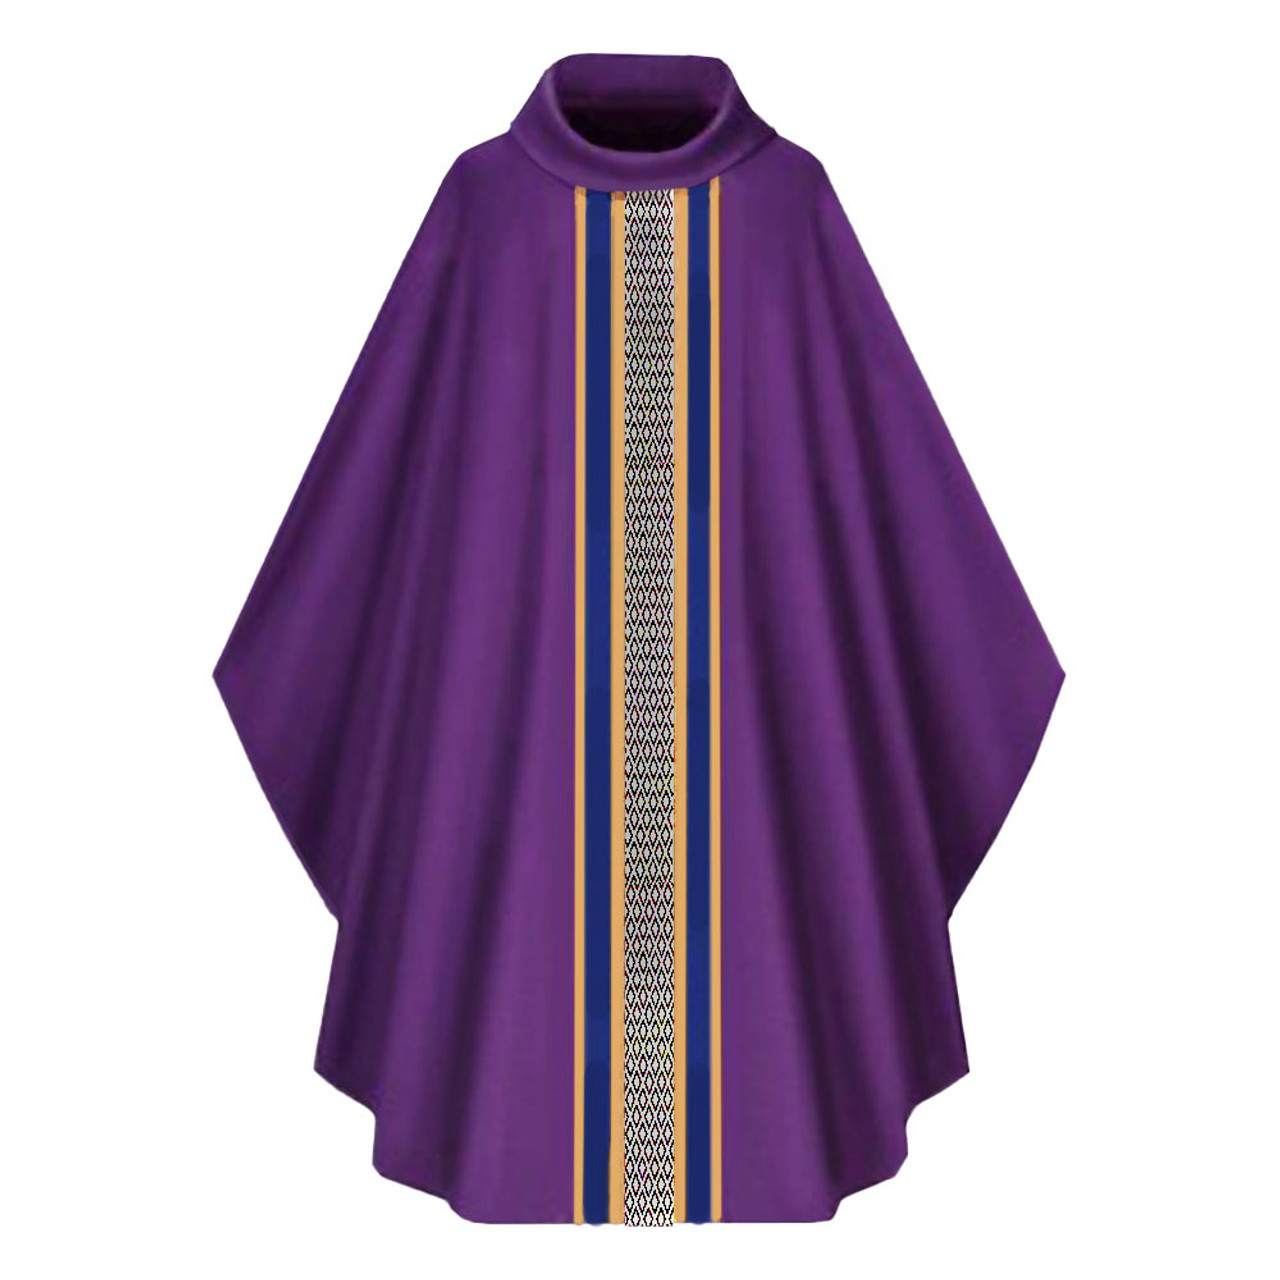 3967 Purple Chasuble in Brugia